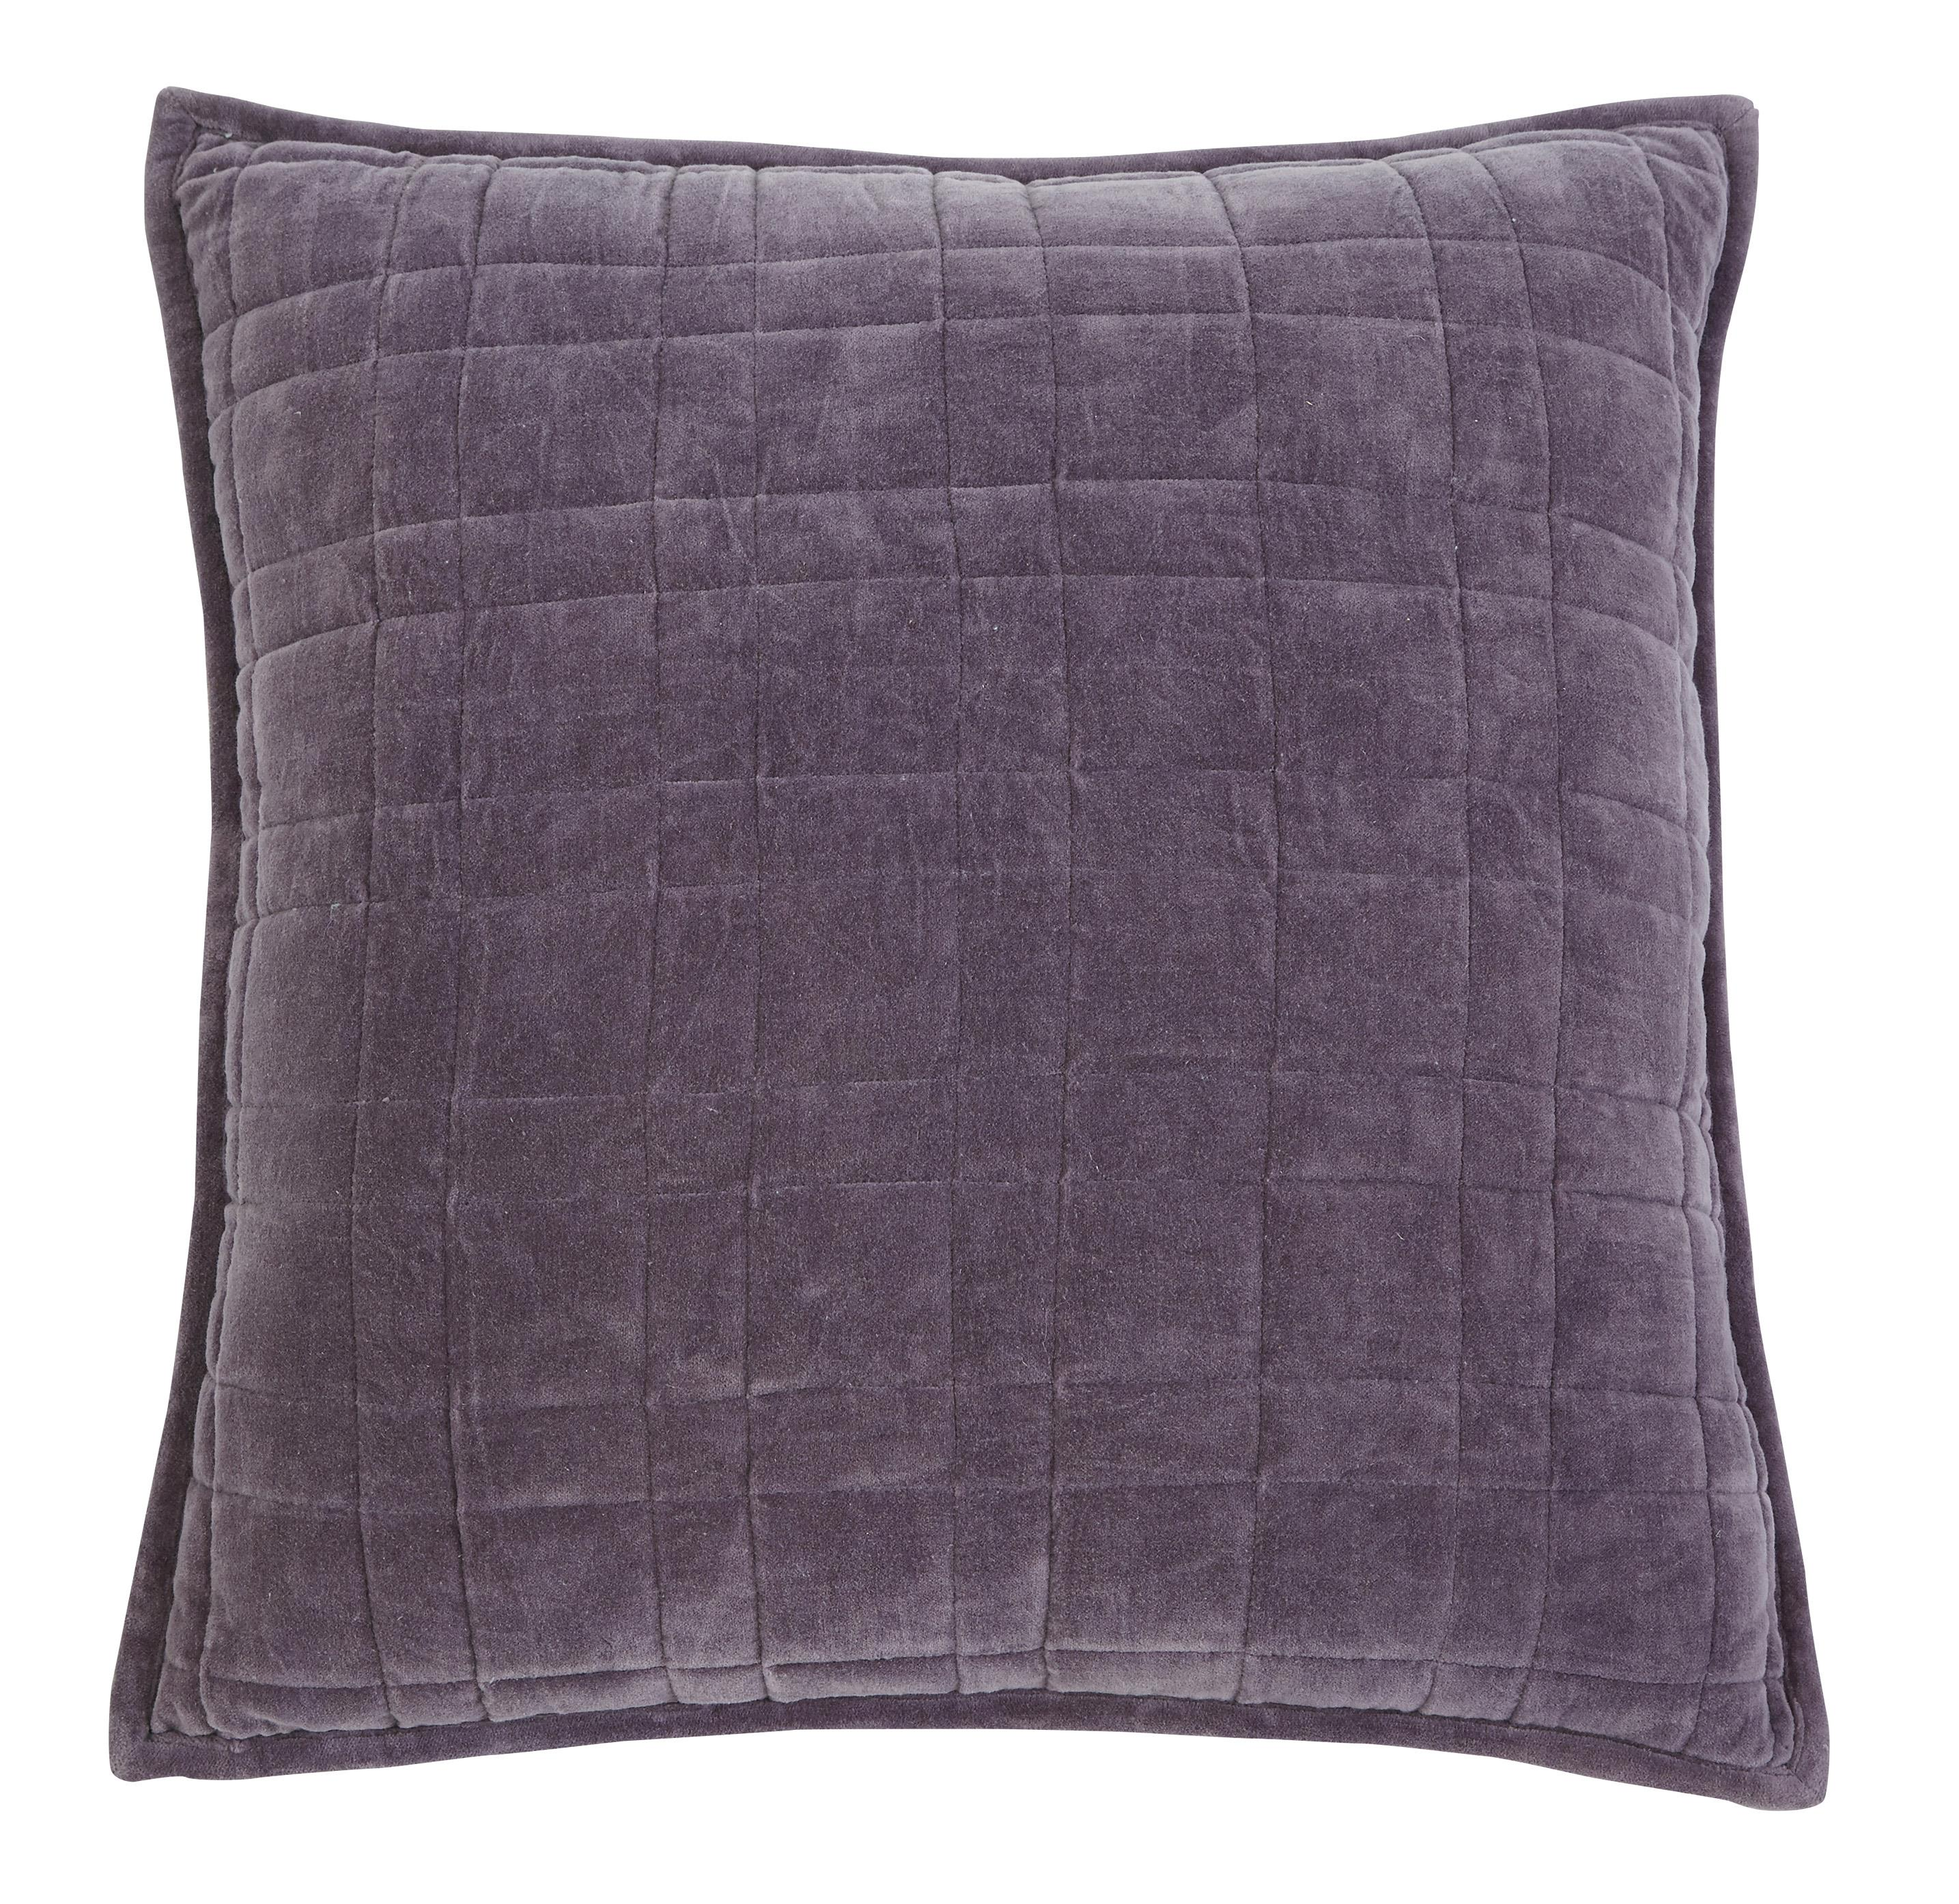 Signature Design by Ashley Pillows Patterned - Plum Pillow Cover - Item Number: A1000305P